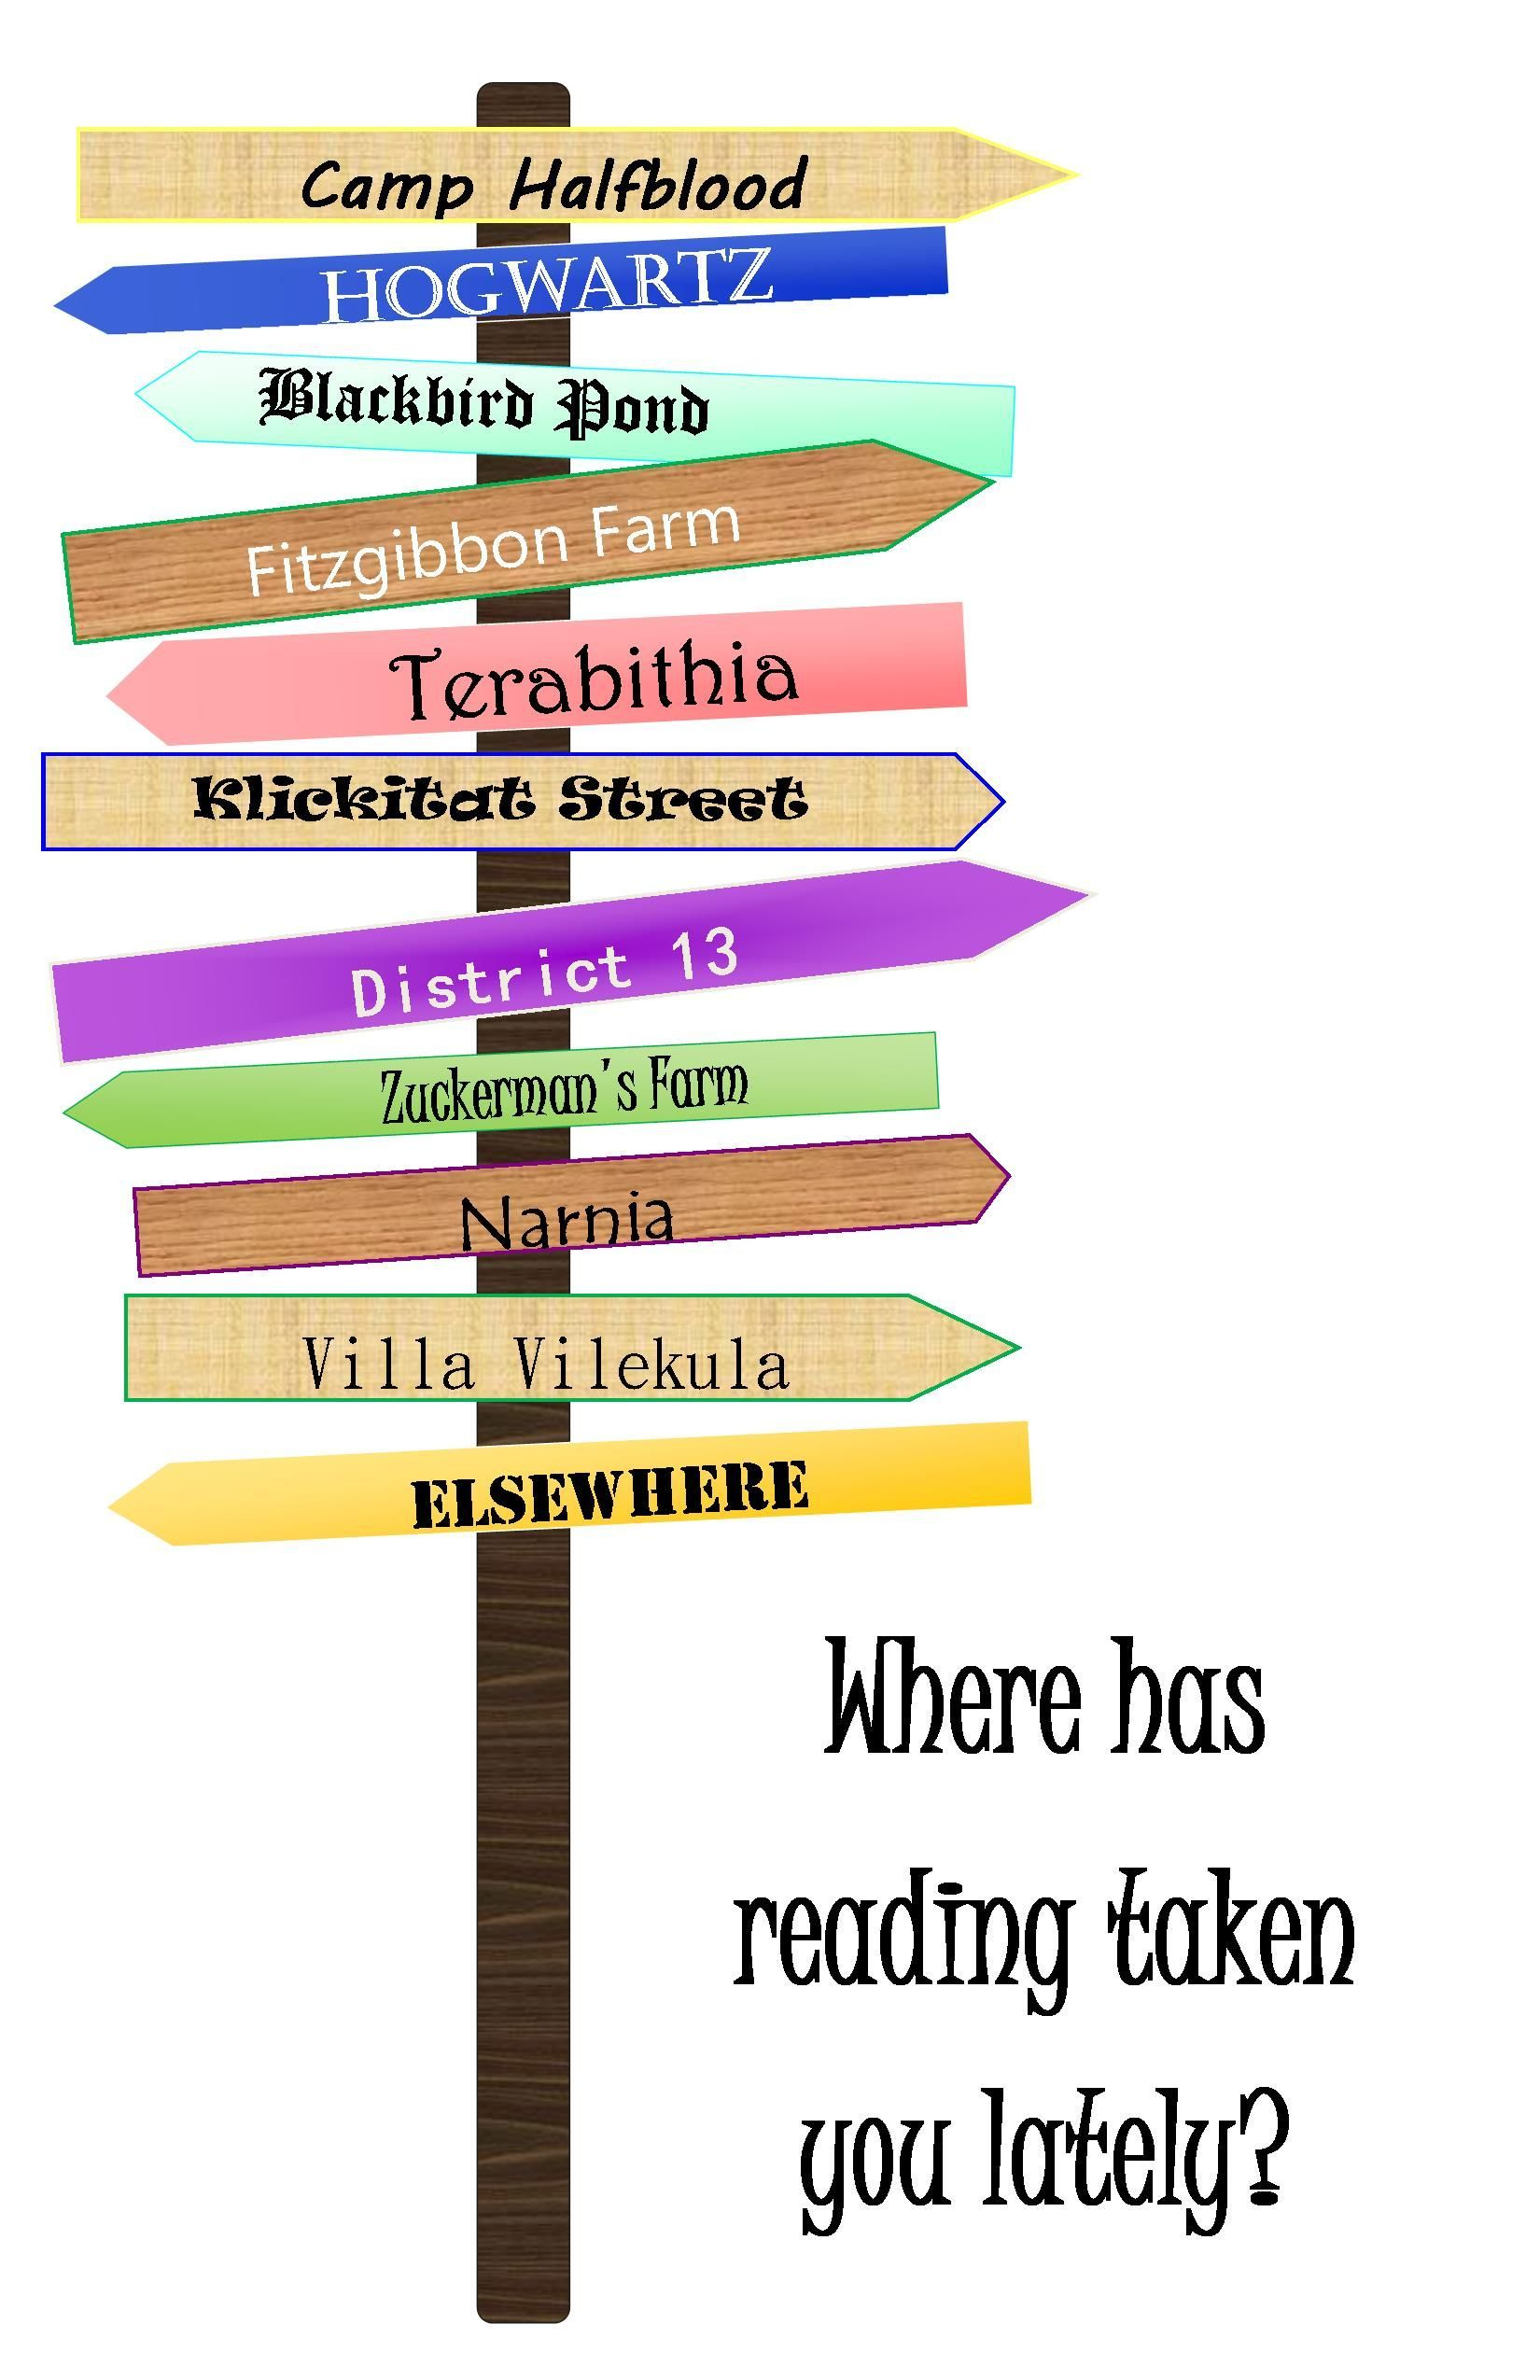 display for classroom door or library. Signs point to famous settings in children's literature.Great display for classroom door or library. Signs point to famous settings in children's literature.